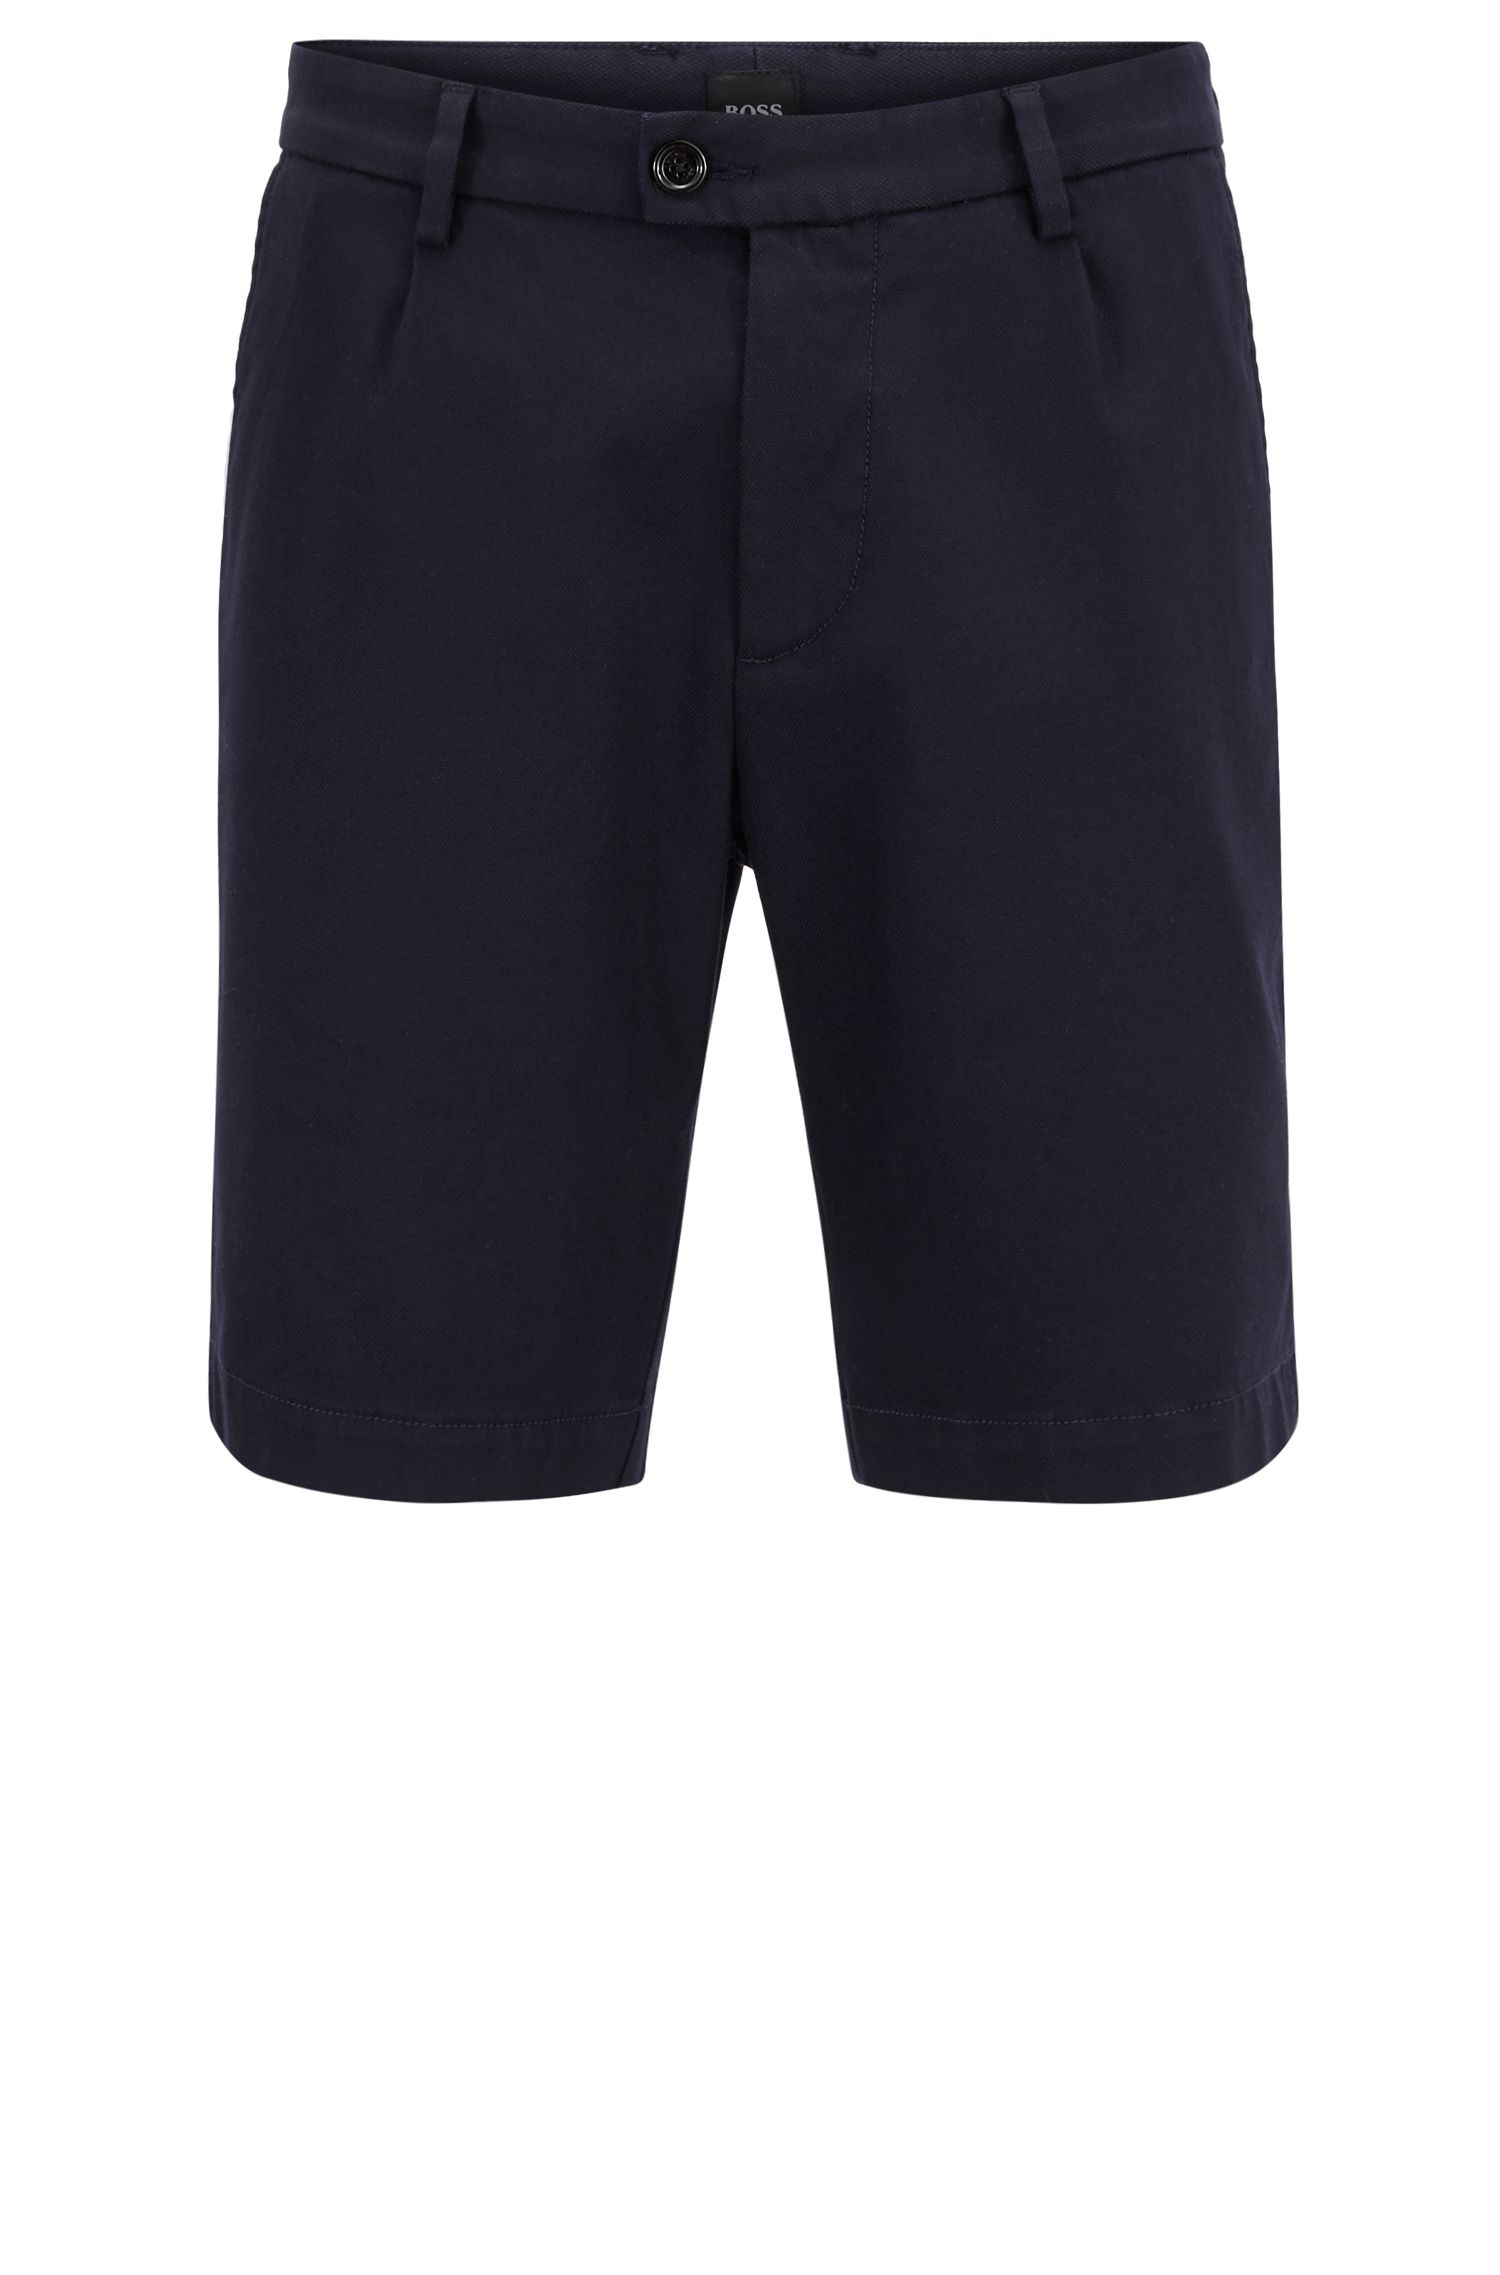 Regular-fit shorts in a structured stretch-cotton blend